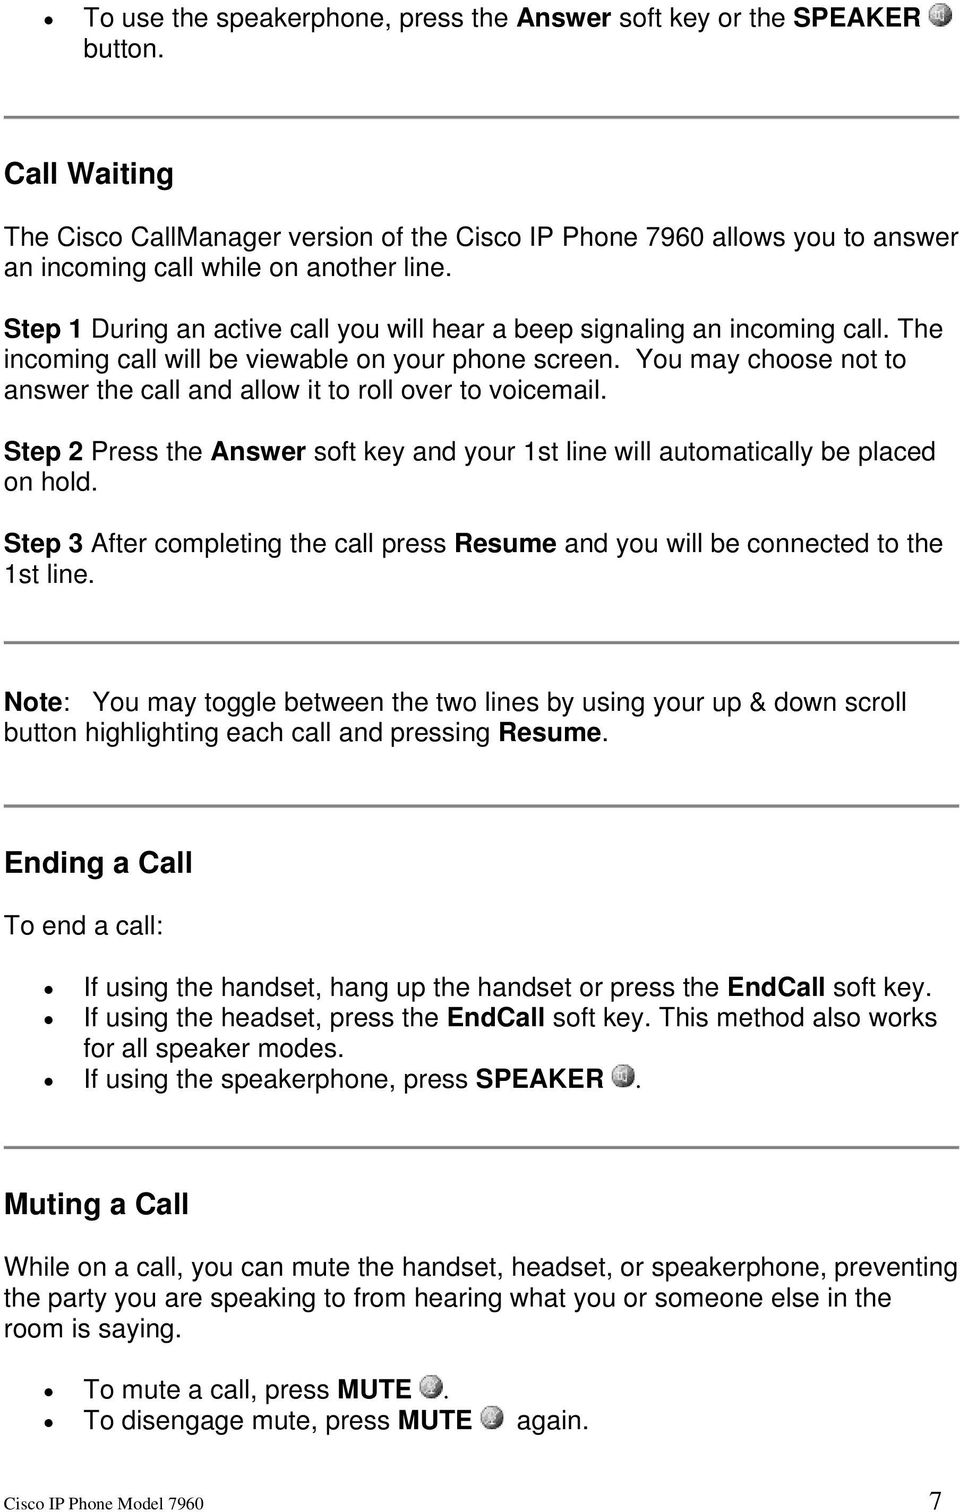 Step 1 During an active call you will hear a beep signaling an incoming call. The incoming call will be viewable on your phone screen.